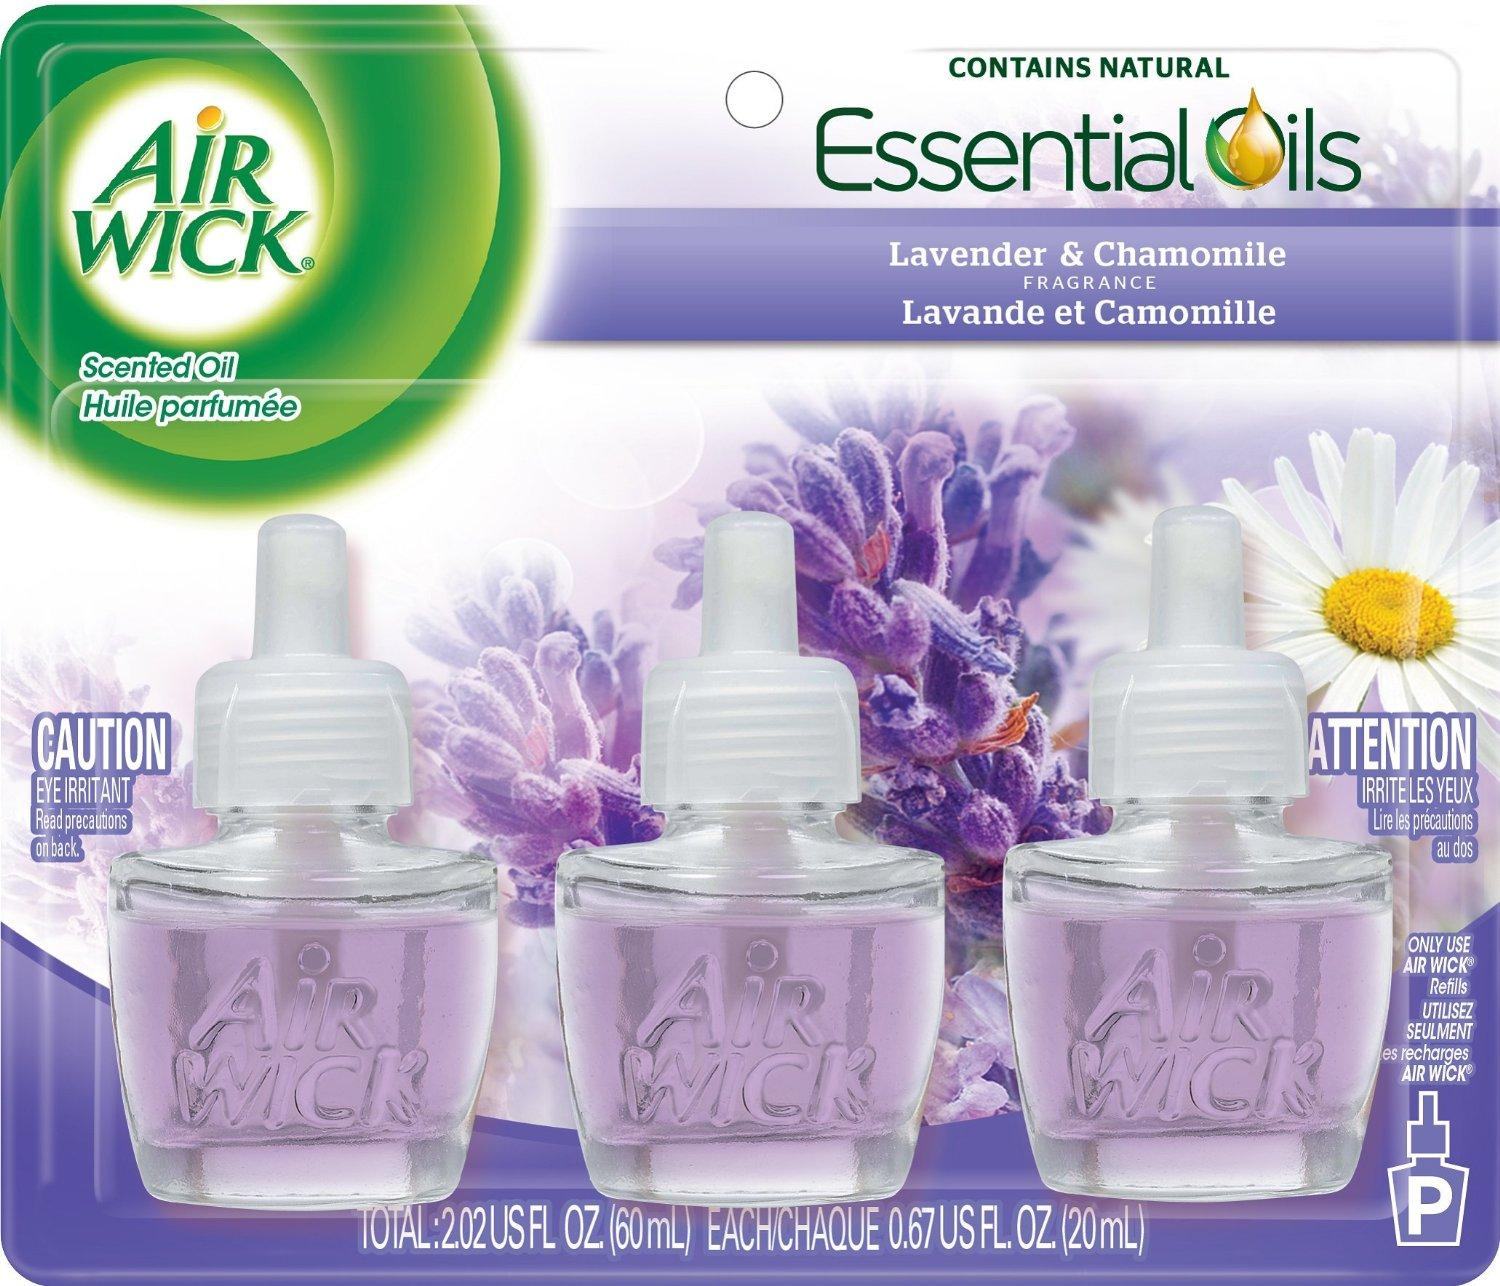 Air Wick Scented Oil Air Freshener, Lavender and Chamomile, 3 Refills